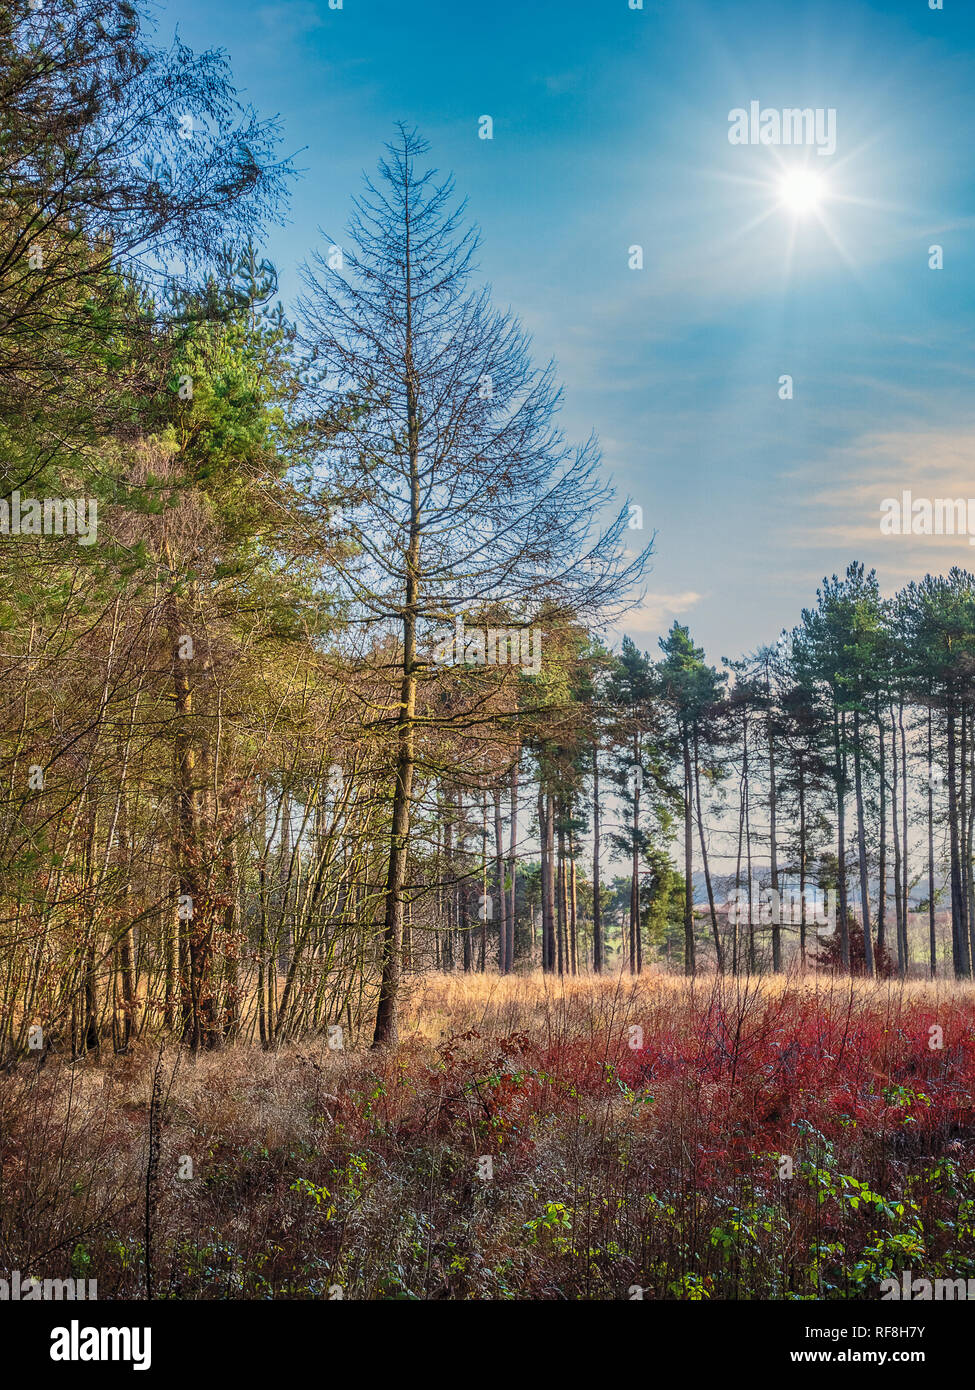 Early Winter at Thieve's Wood in Nottinghamshire - Stock Image